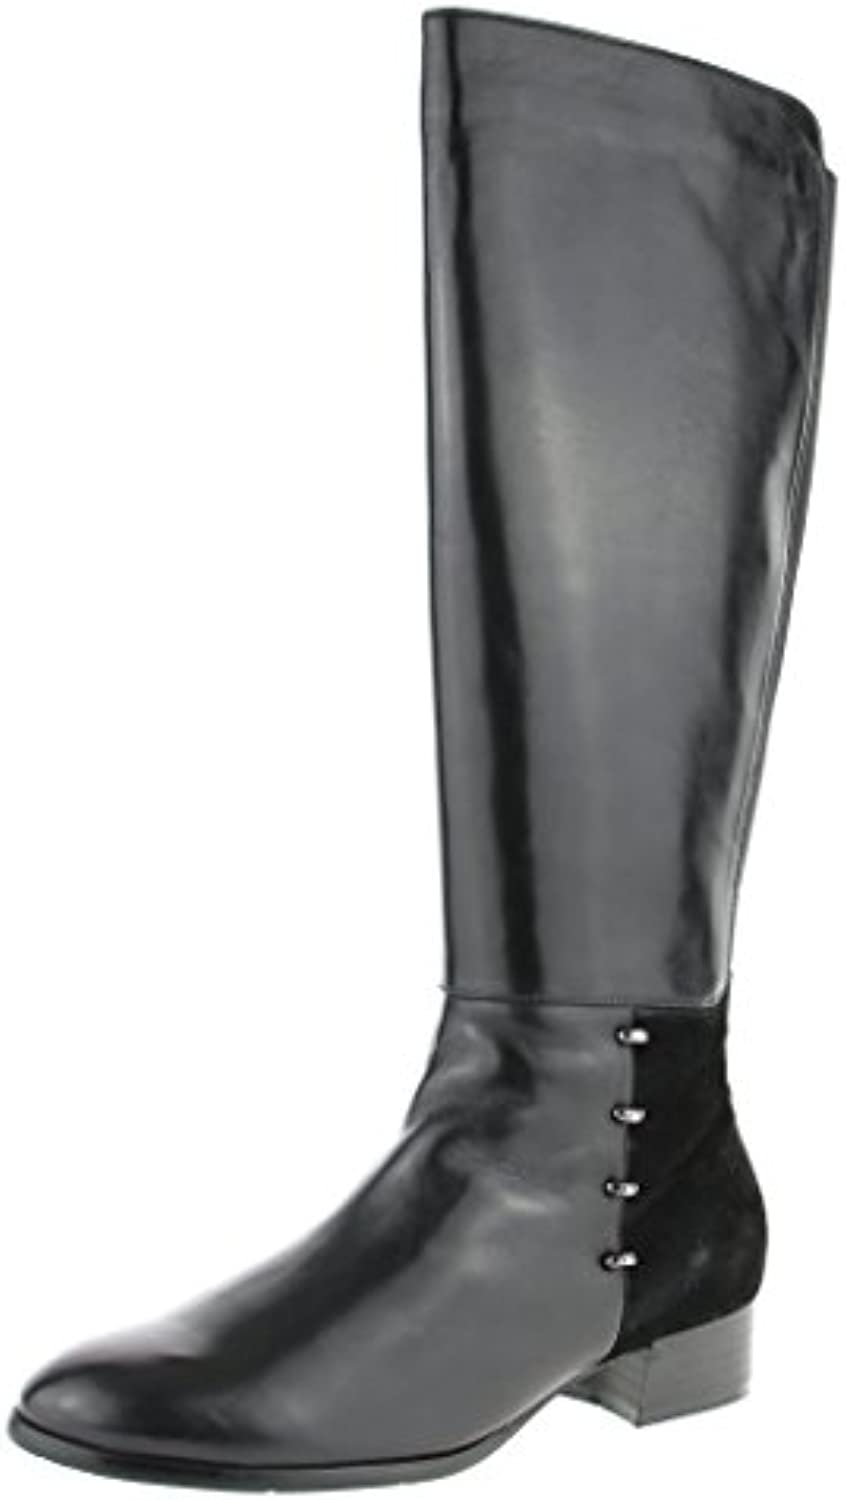 Regarde Le Ciel - Cristion Black Glove - CristionFW17102700 - Size: 42.0